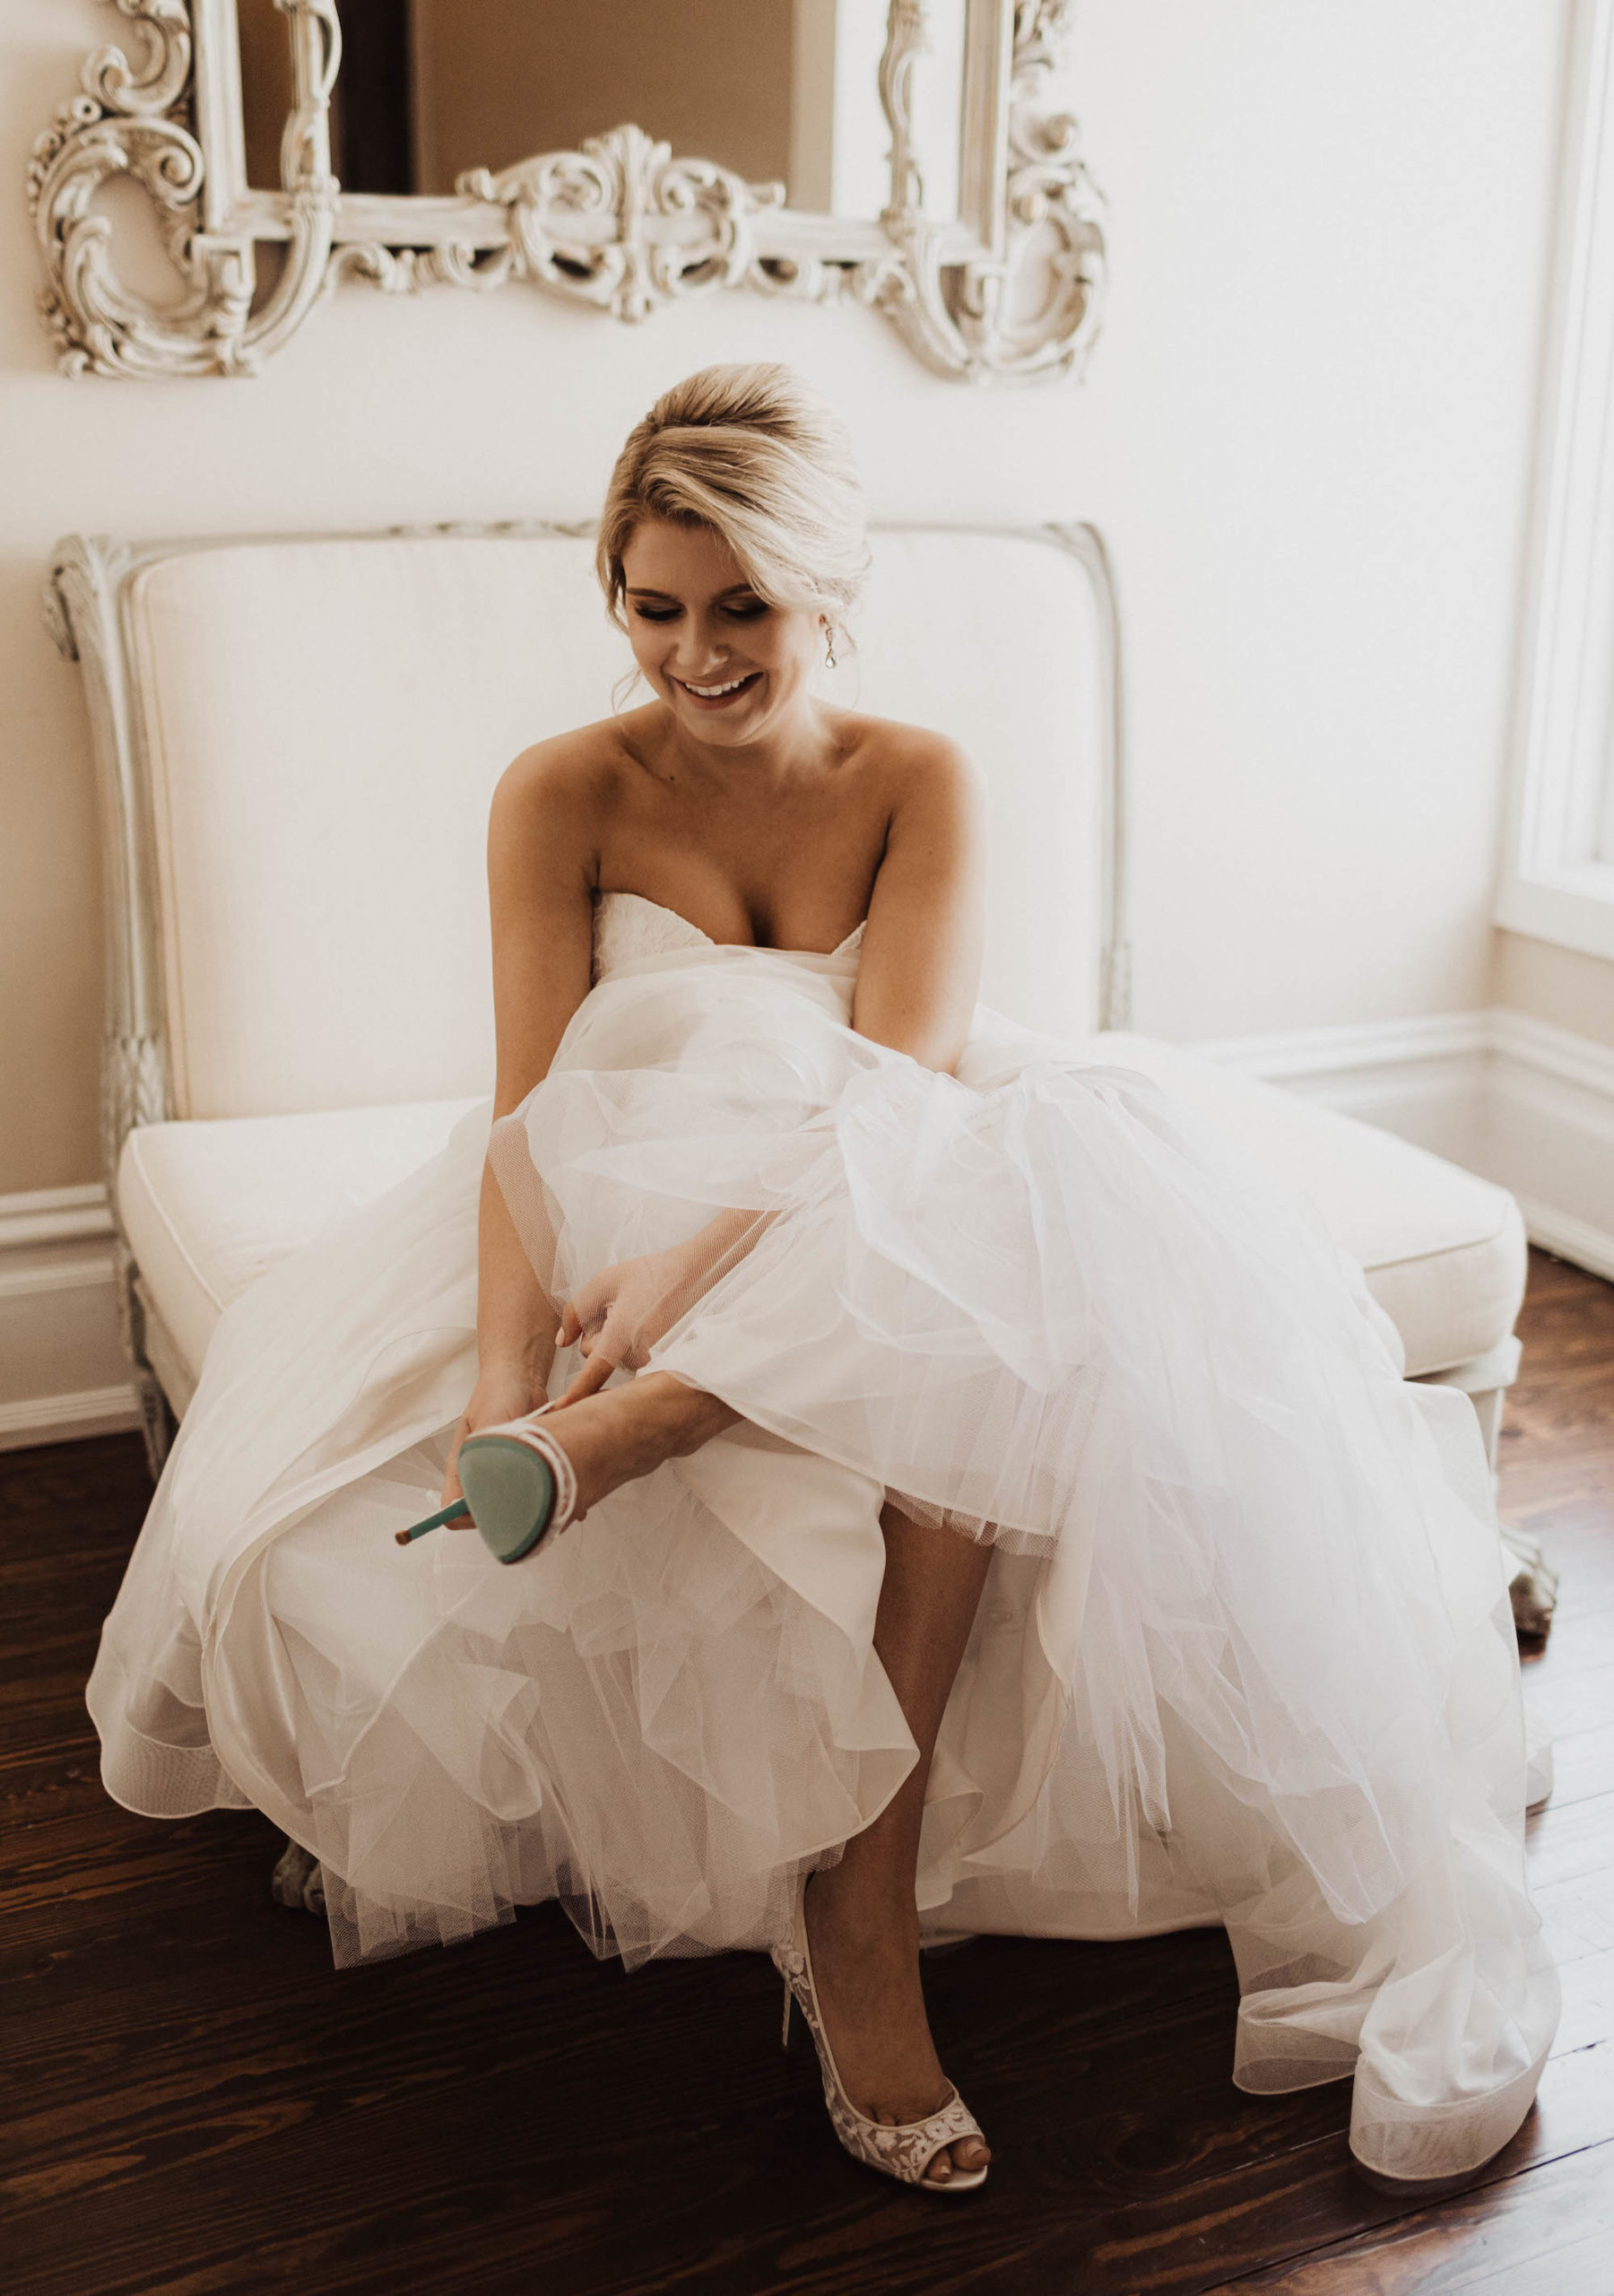 Tampa Bay Bride Getting Ready Putting on Shoes Beauty Wedding Portrait